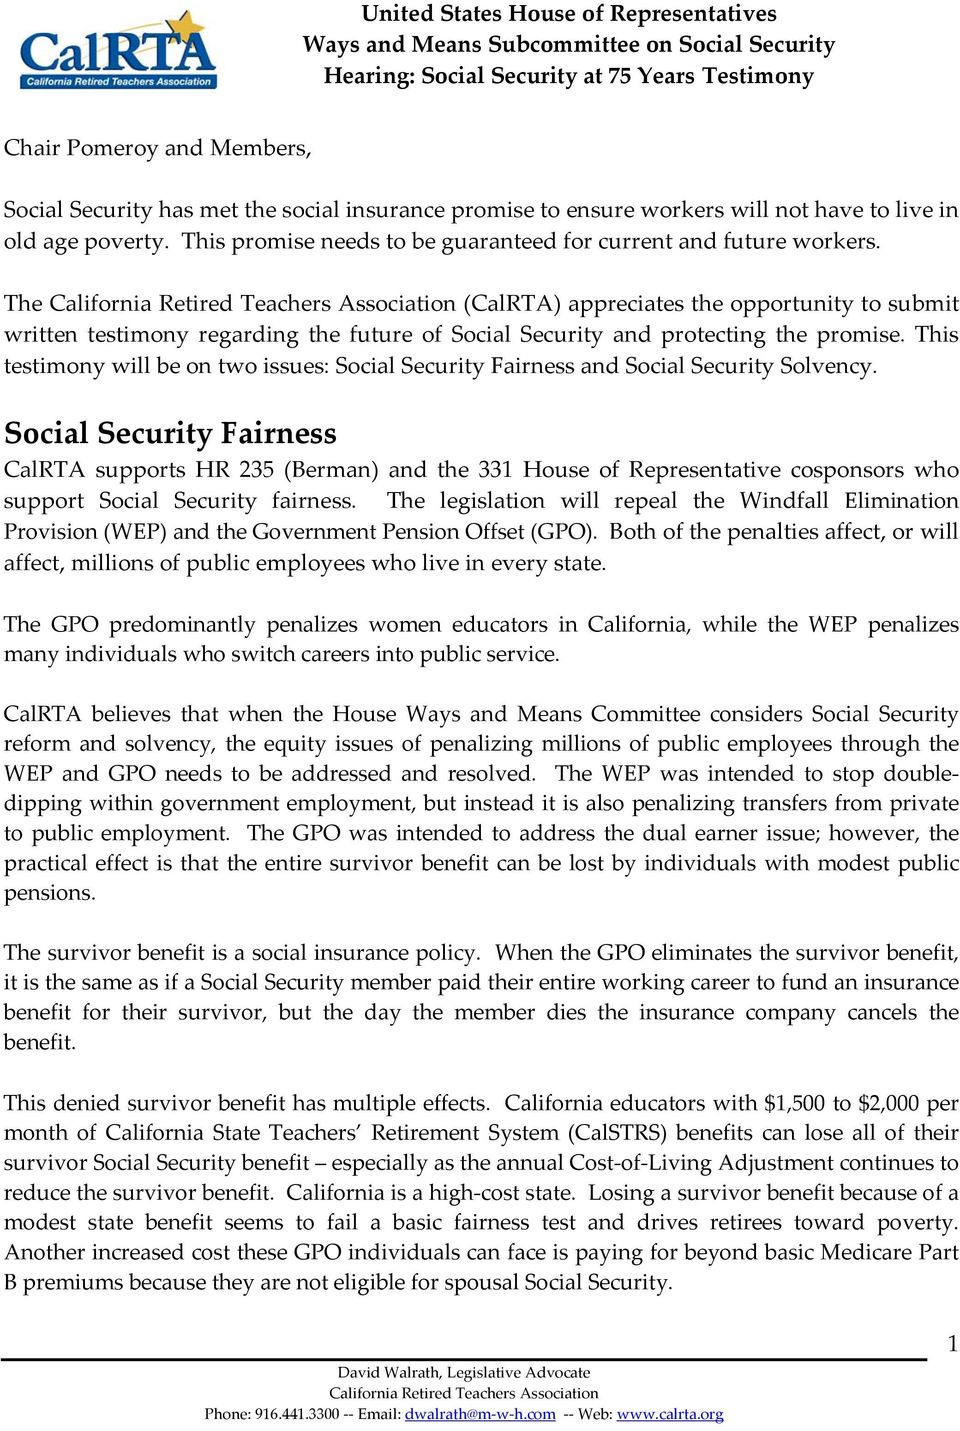 The (CalRTA) appreciates the opportunity to submit written testimony regarding the future of Social Security and protecting the promise.